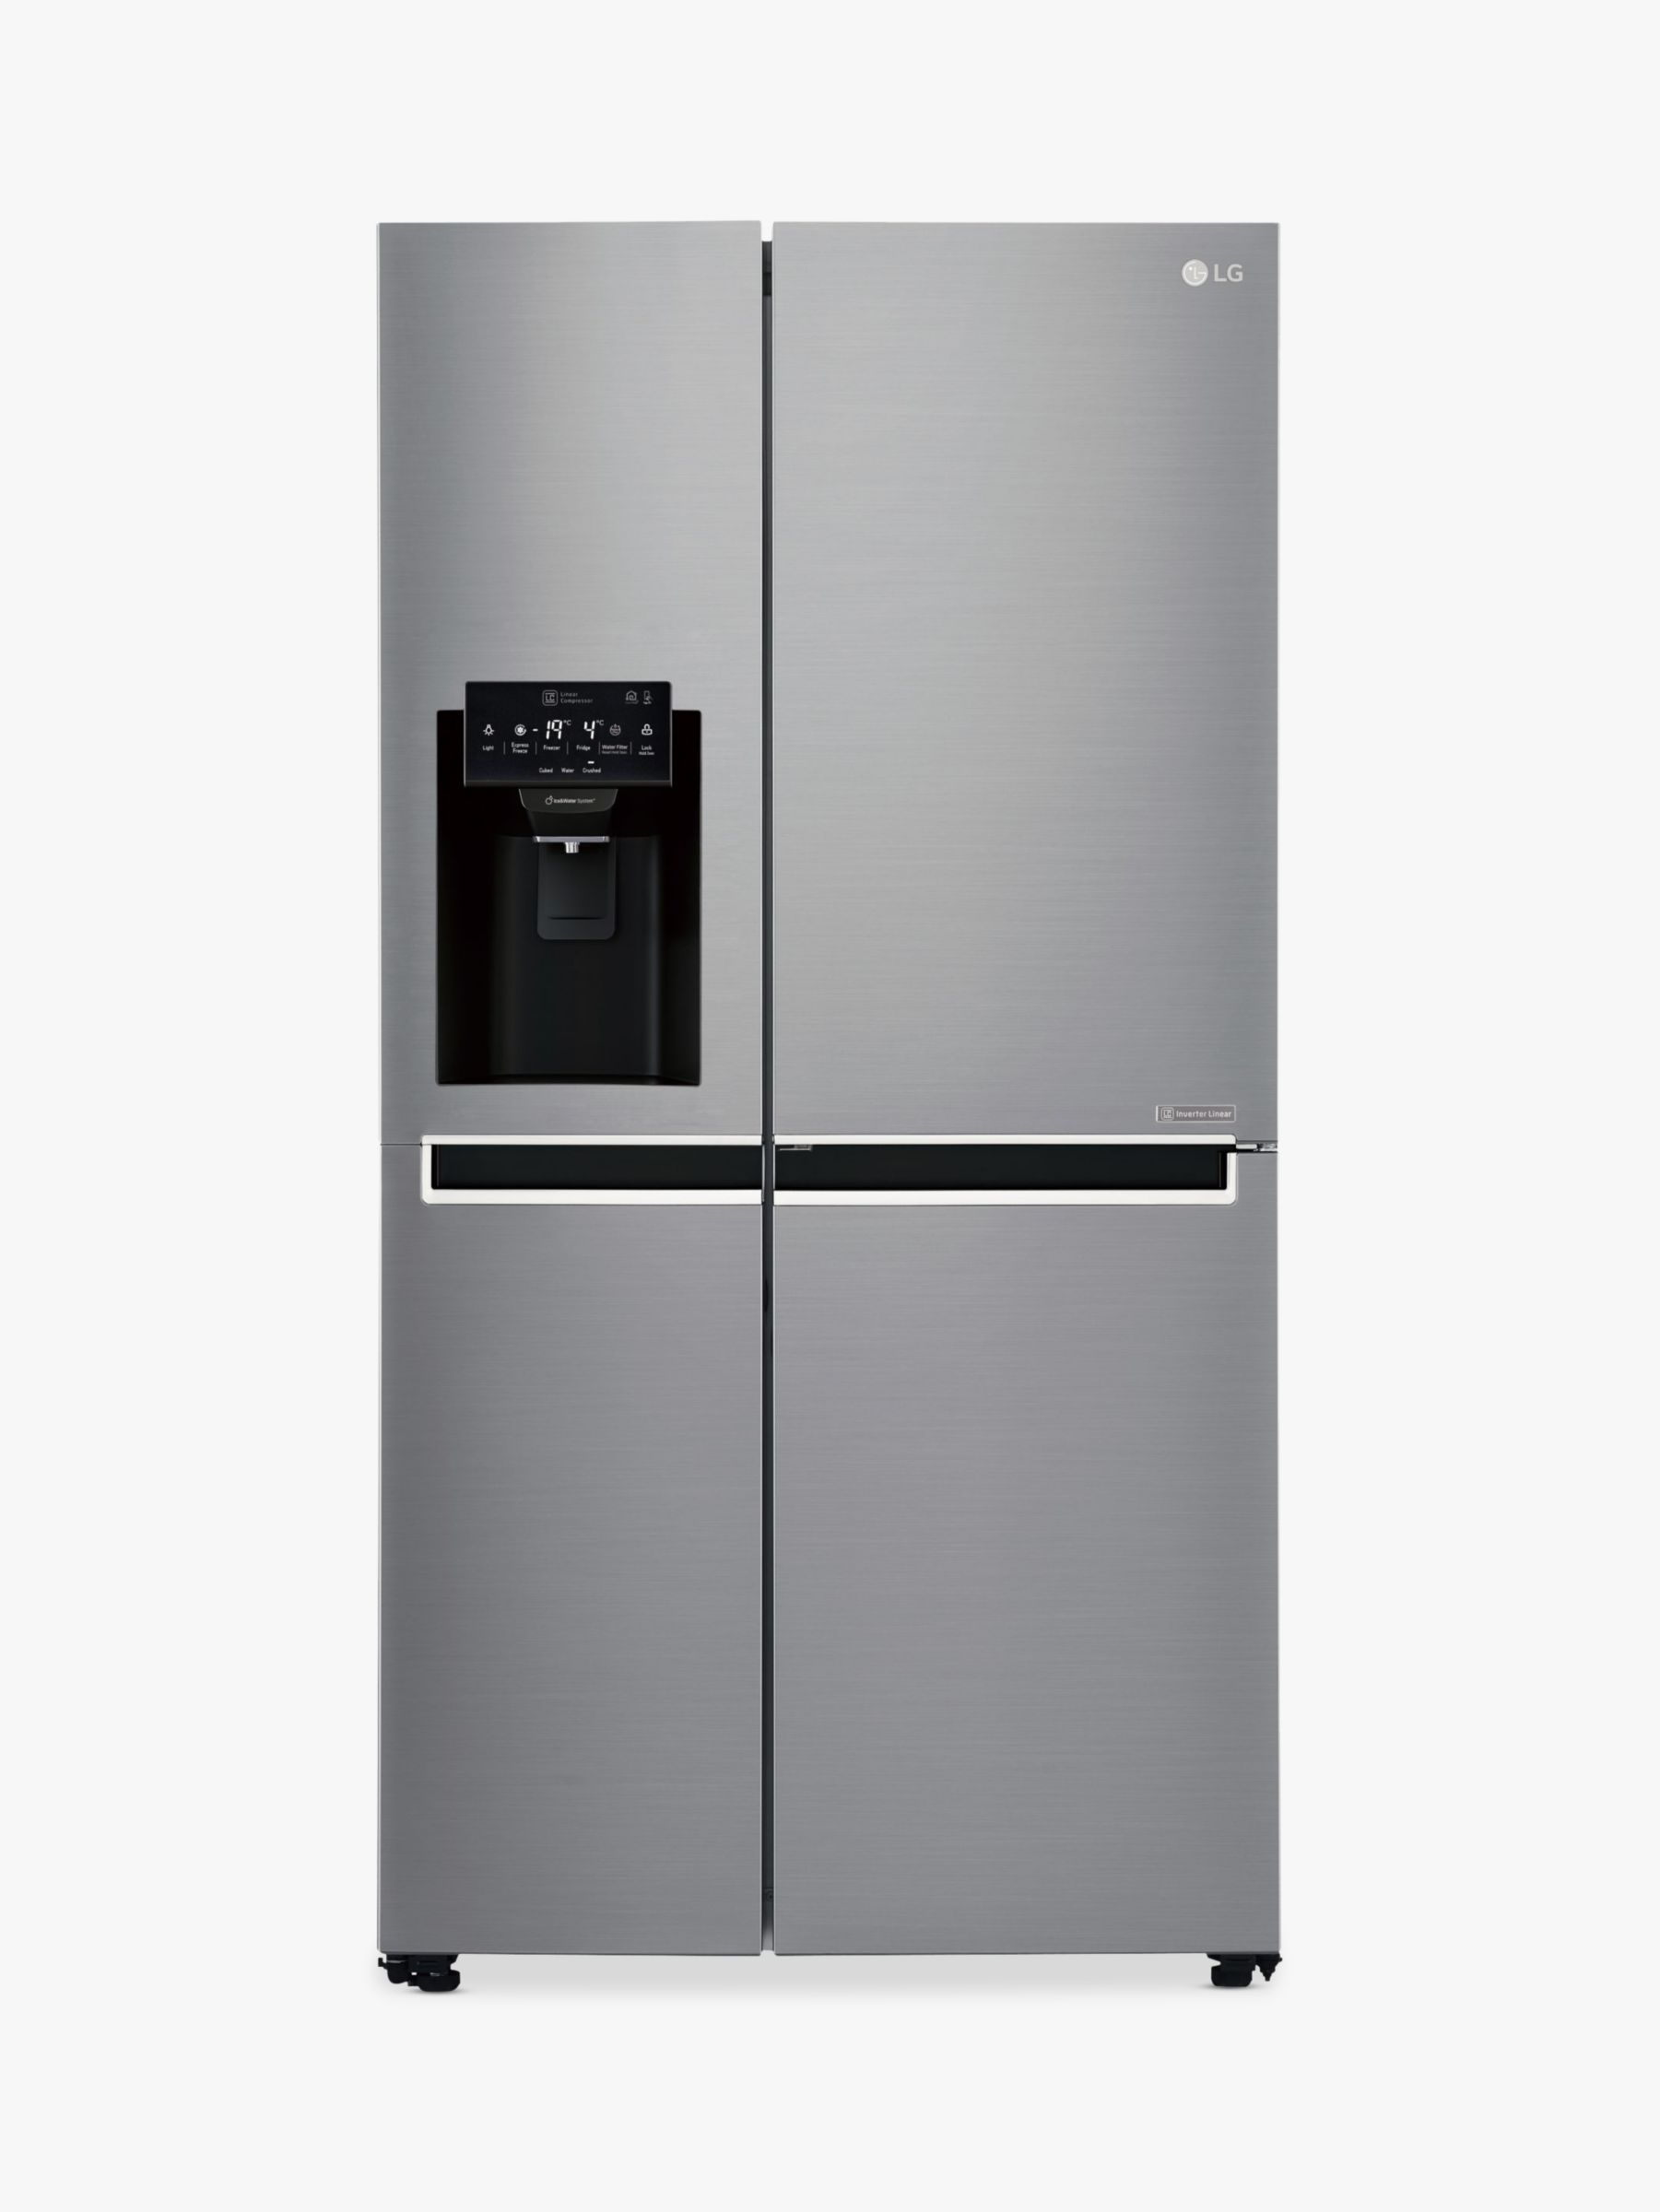 LG LG GSL760PZXV American Style Fridge Freezer, A+ Energy Rating, 91.2cm Wide, Silver